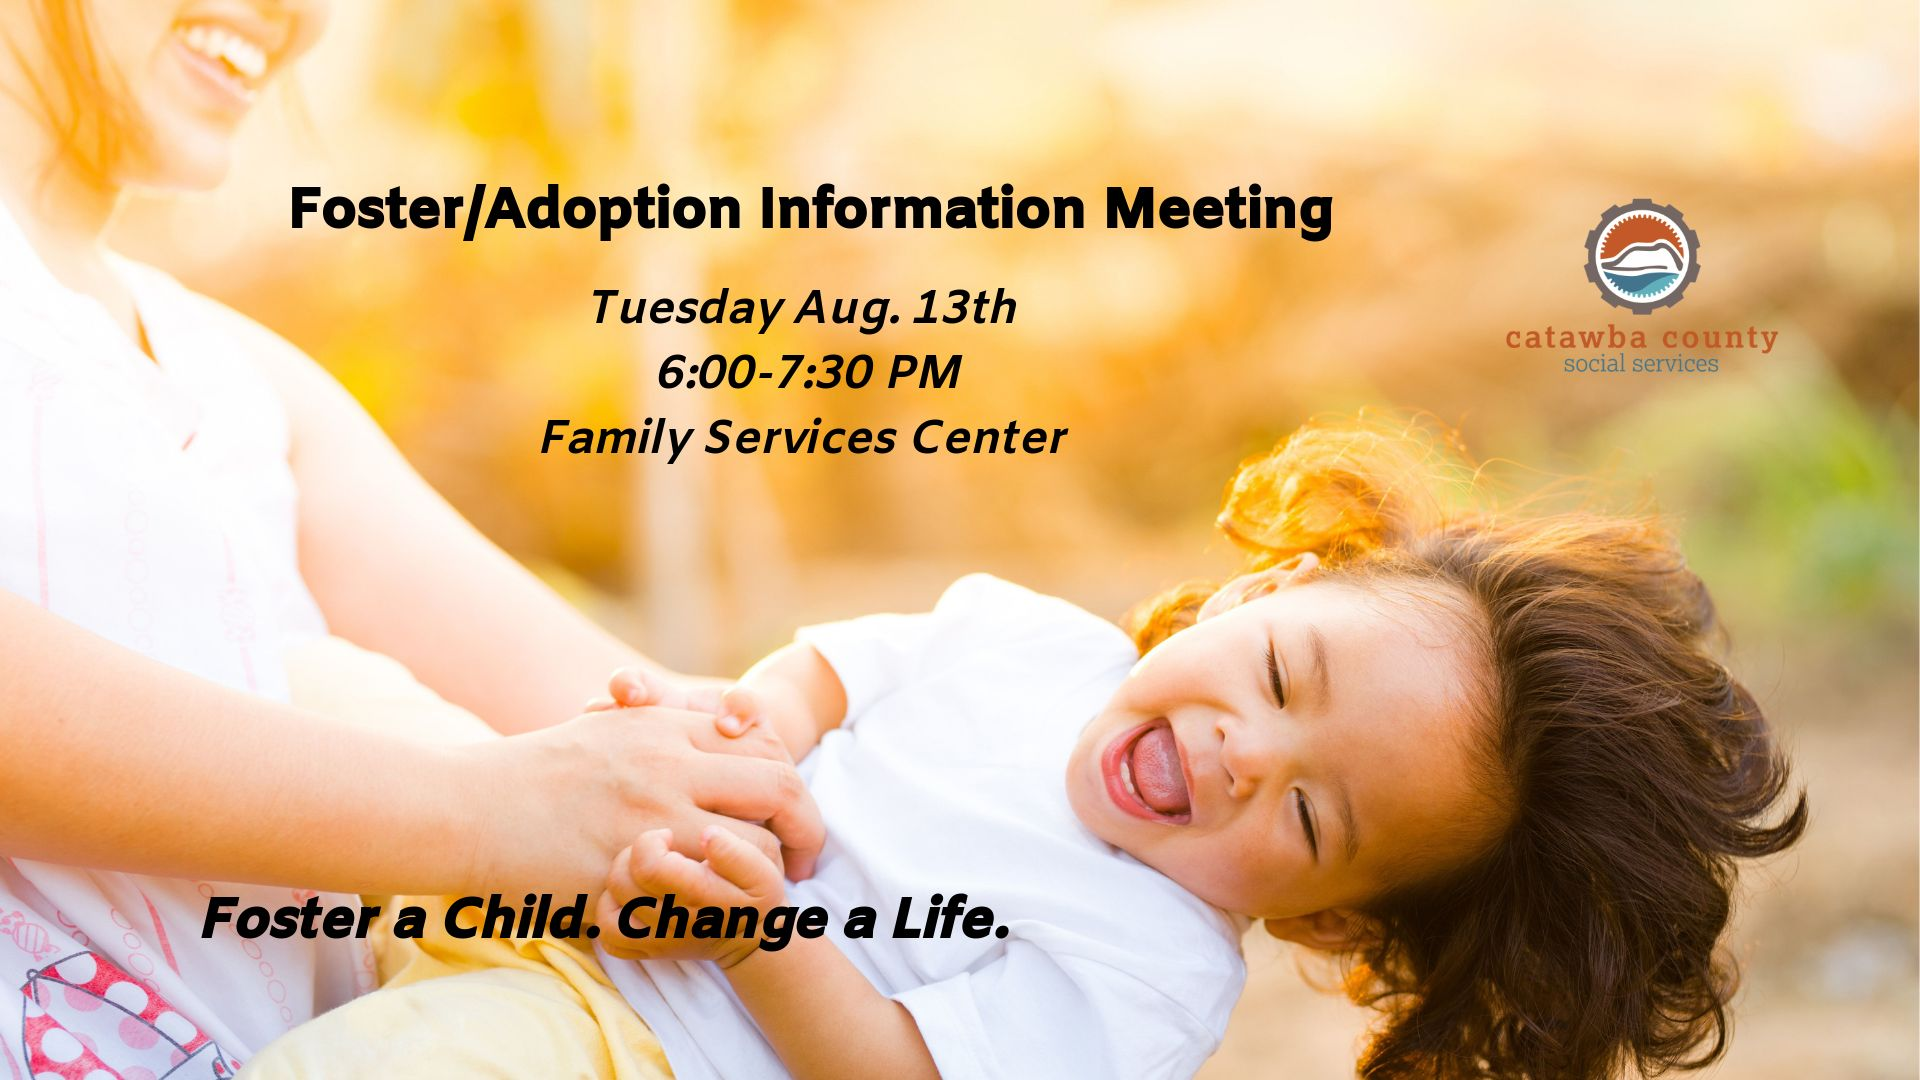 Foster/Adoption Information Meeting Aug 13 2019